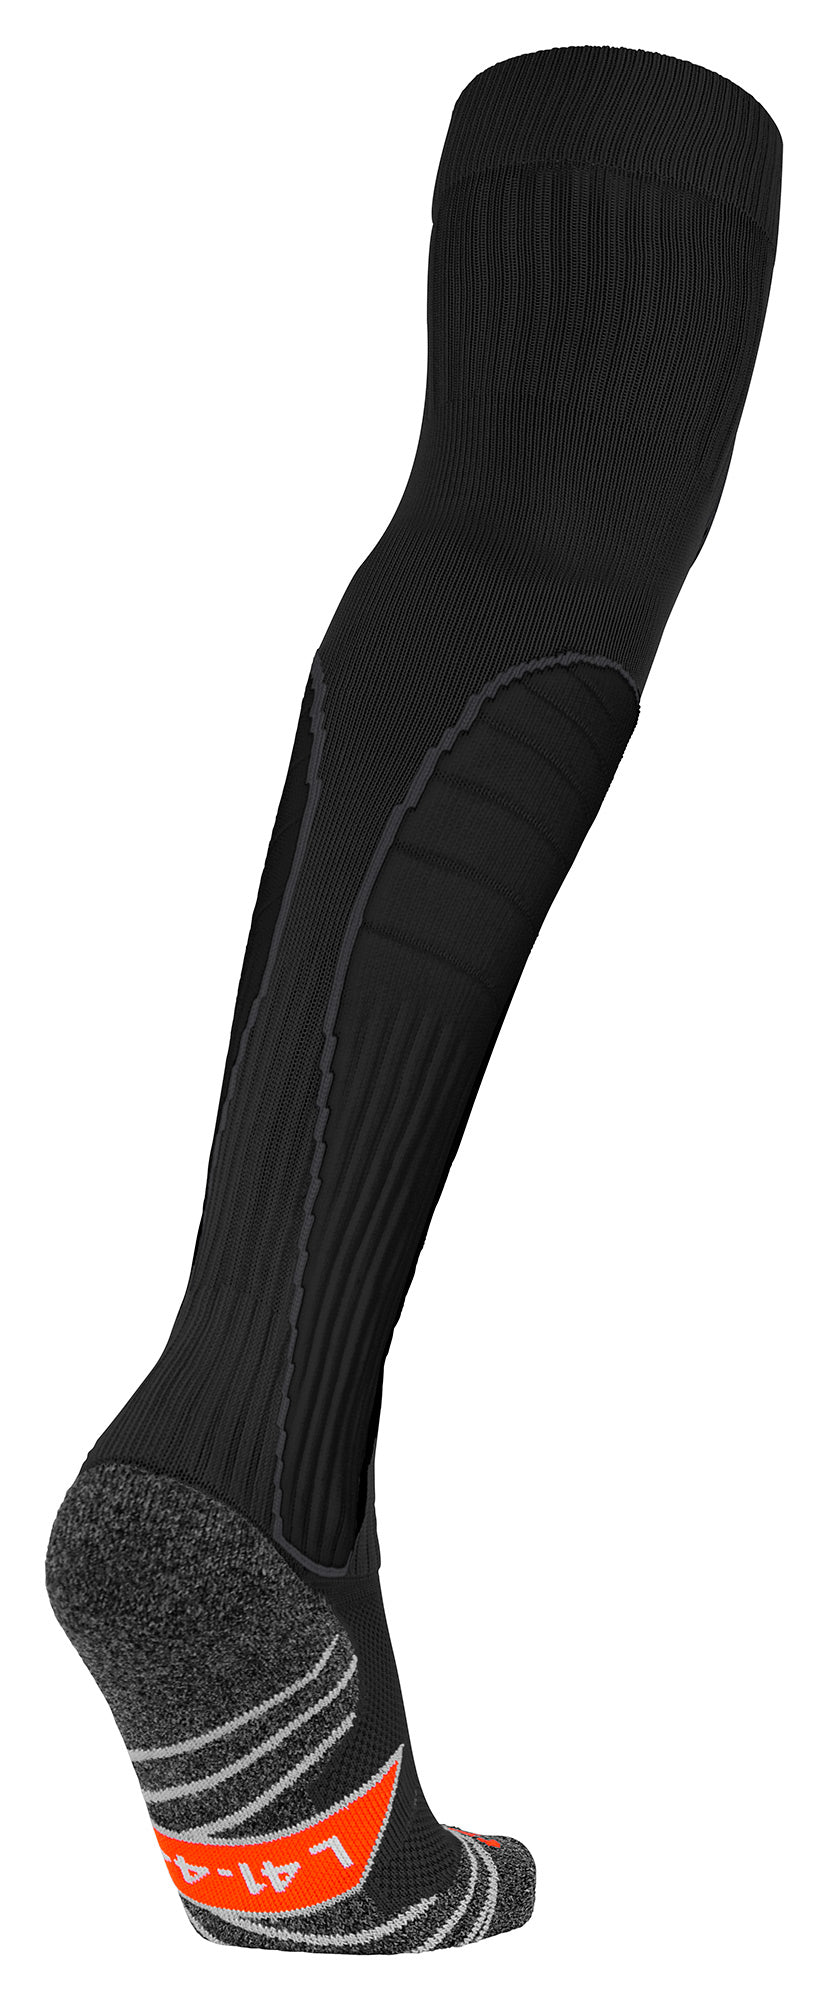 c98e983c220 Stanno Black high Impact Goalkeeper sock showing raised foot and sole